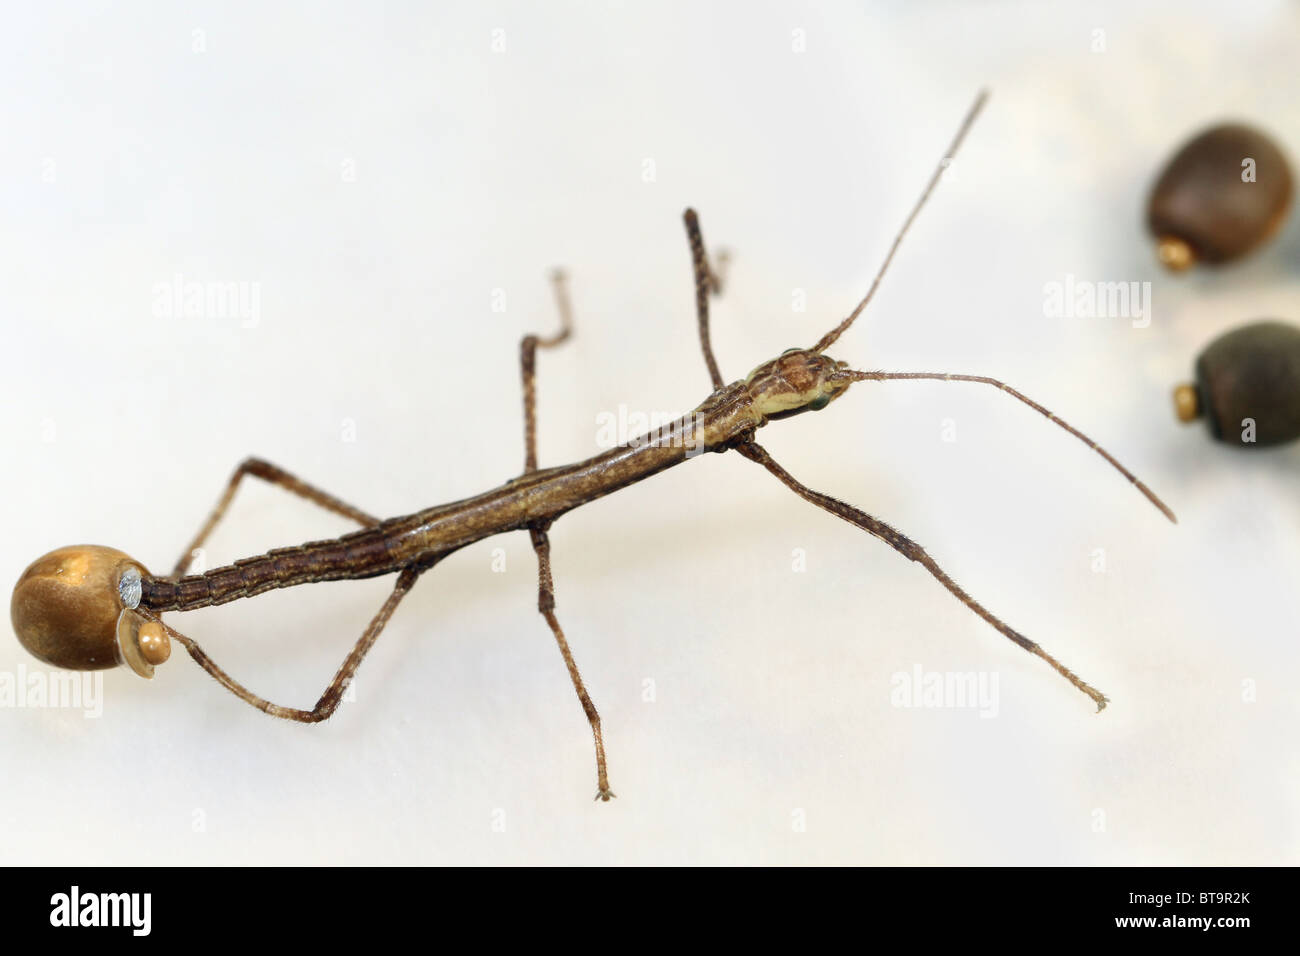 walking stick insect almost hatched the newborn insect is